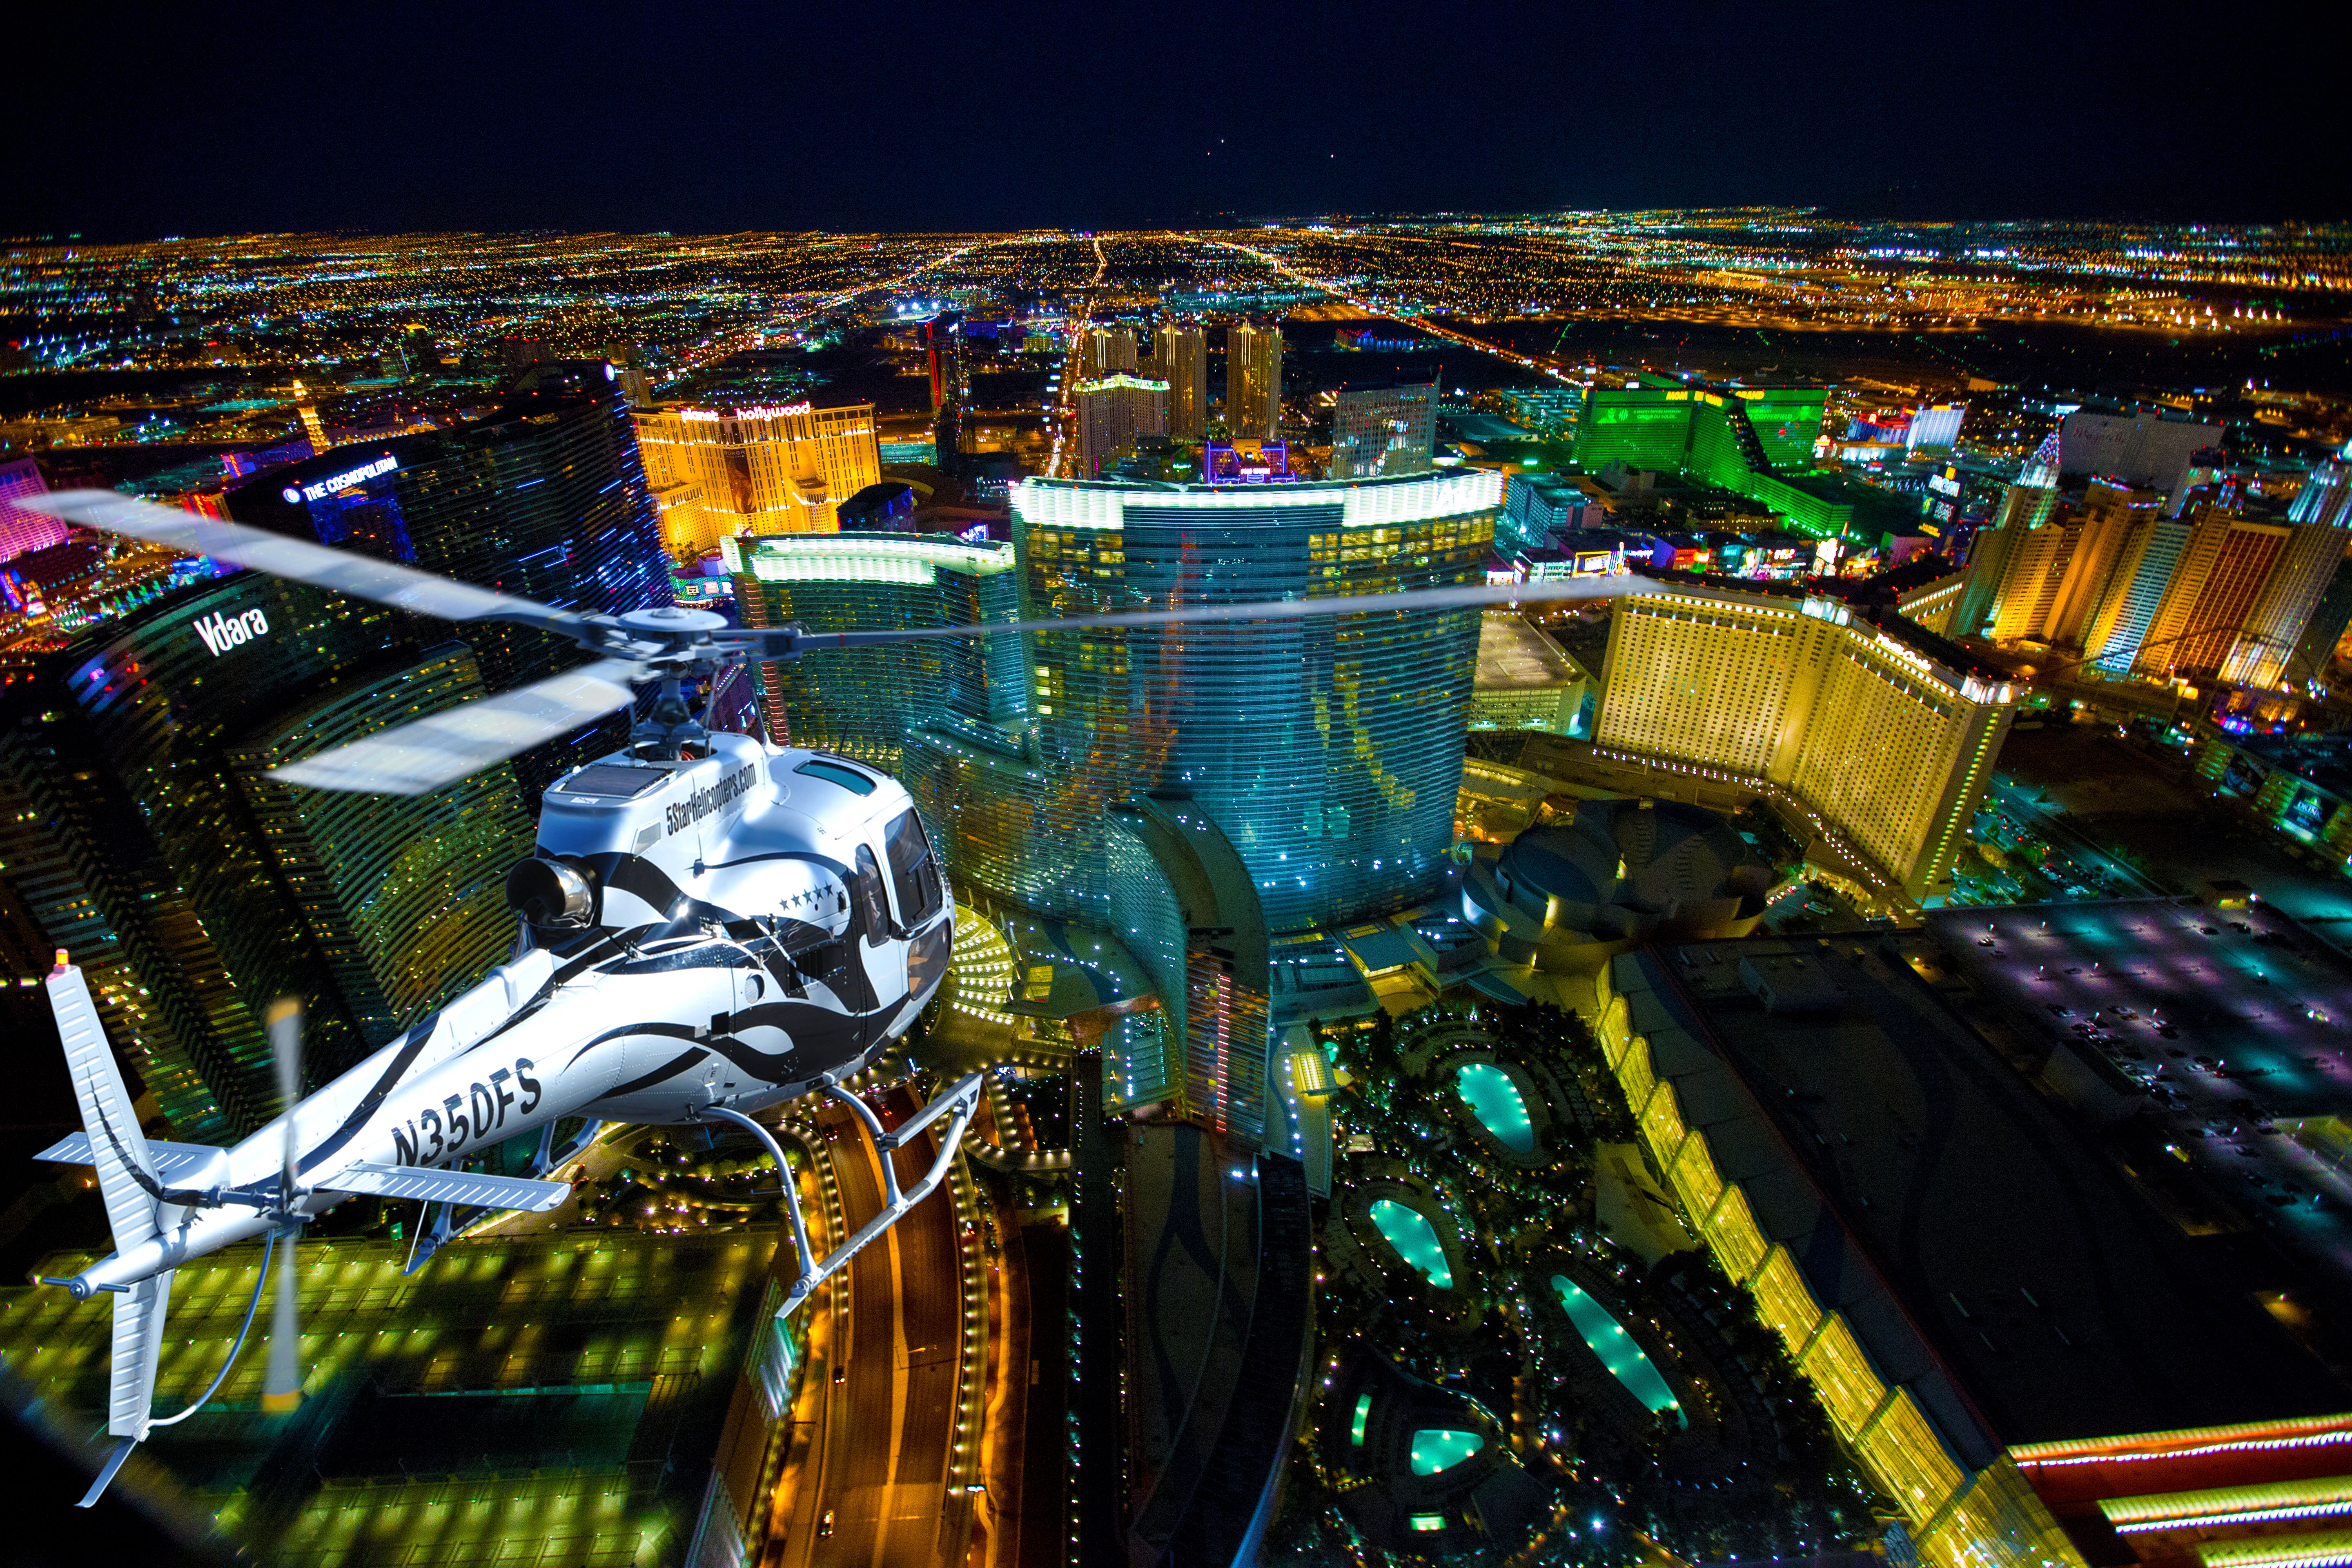 grand canyon helicopter tours with Las Vegas Strip Helicopter Tour And Dining Experience on Grand Canyon West further Lv Strip also Grand Canyon Skywalk Express Helicopter Tour furthermore 5starhelicoptertours also Watch.